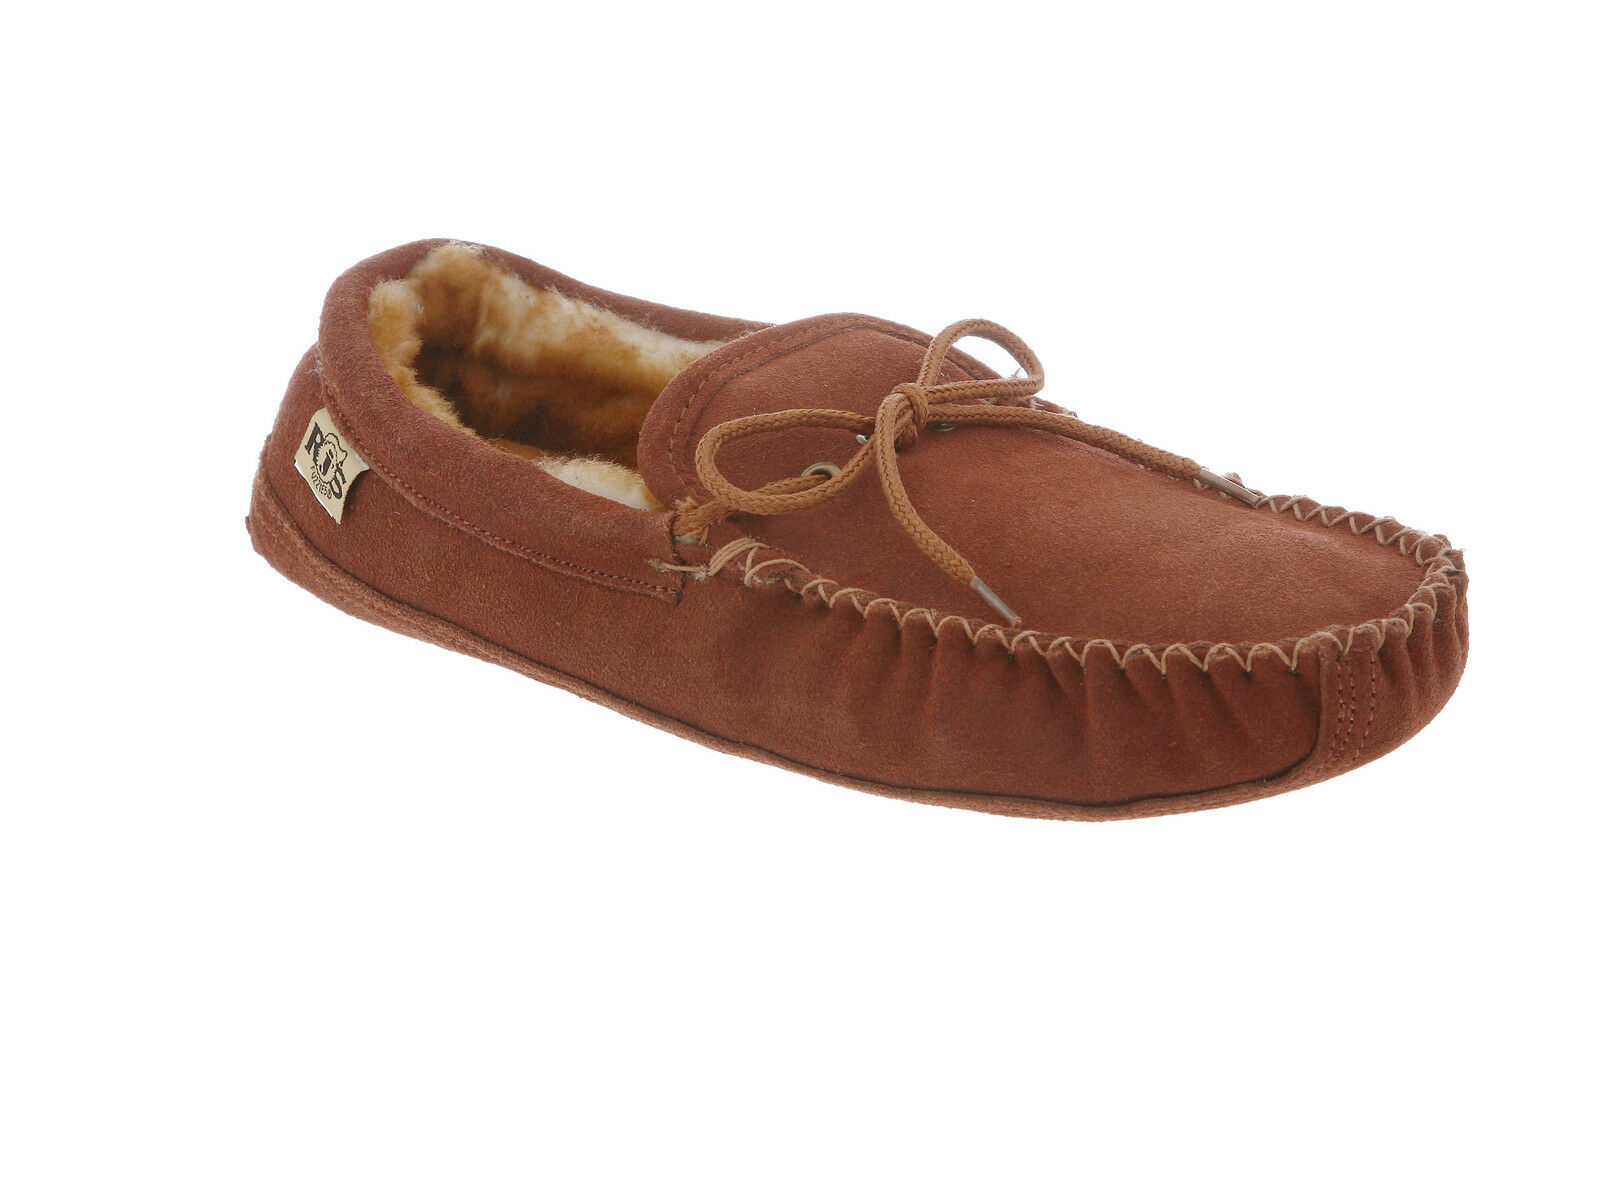 Rj's Fuzzies Slipper Sheepskin Mens Soft Sole Moccasin Brown Medium (D, M) 12